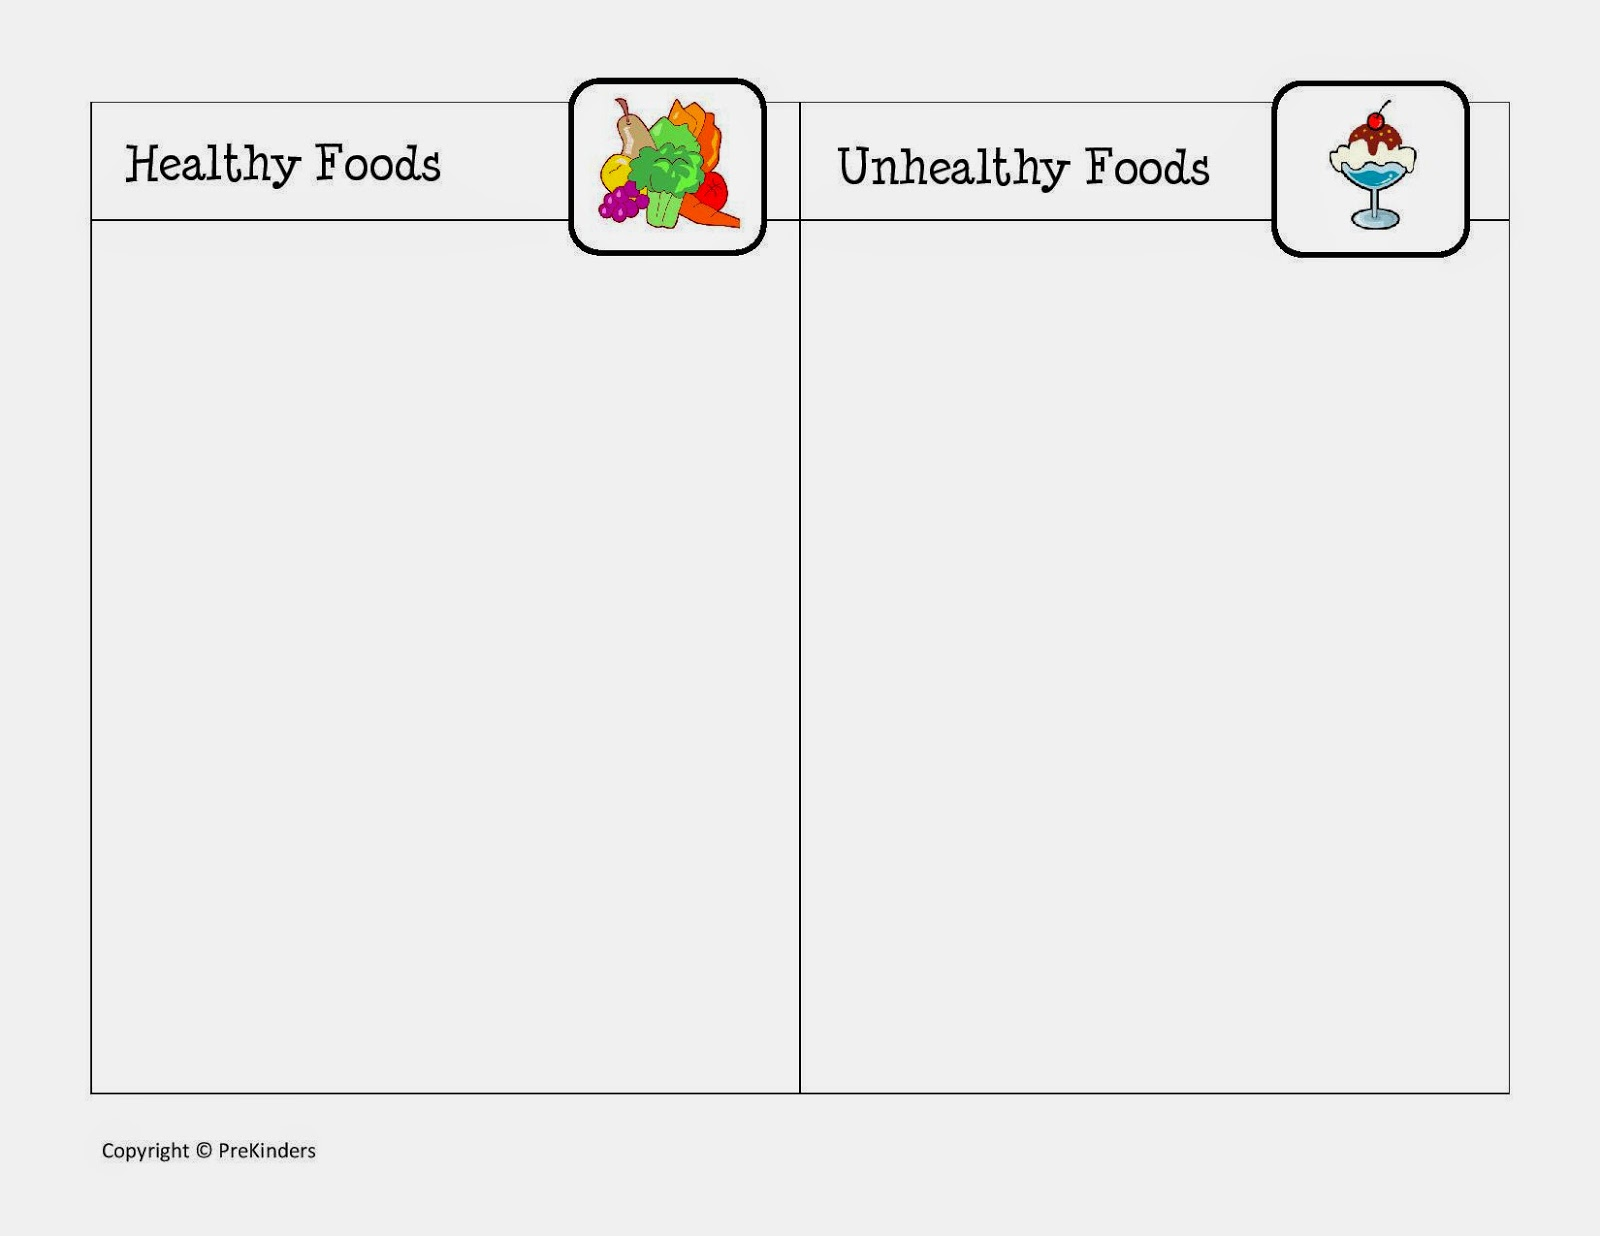 Free Esl Healthy Food Worksheets Bad Unhealthy Foods For